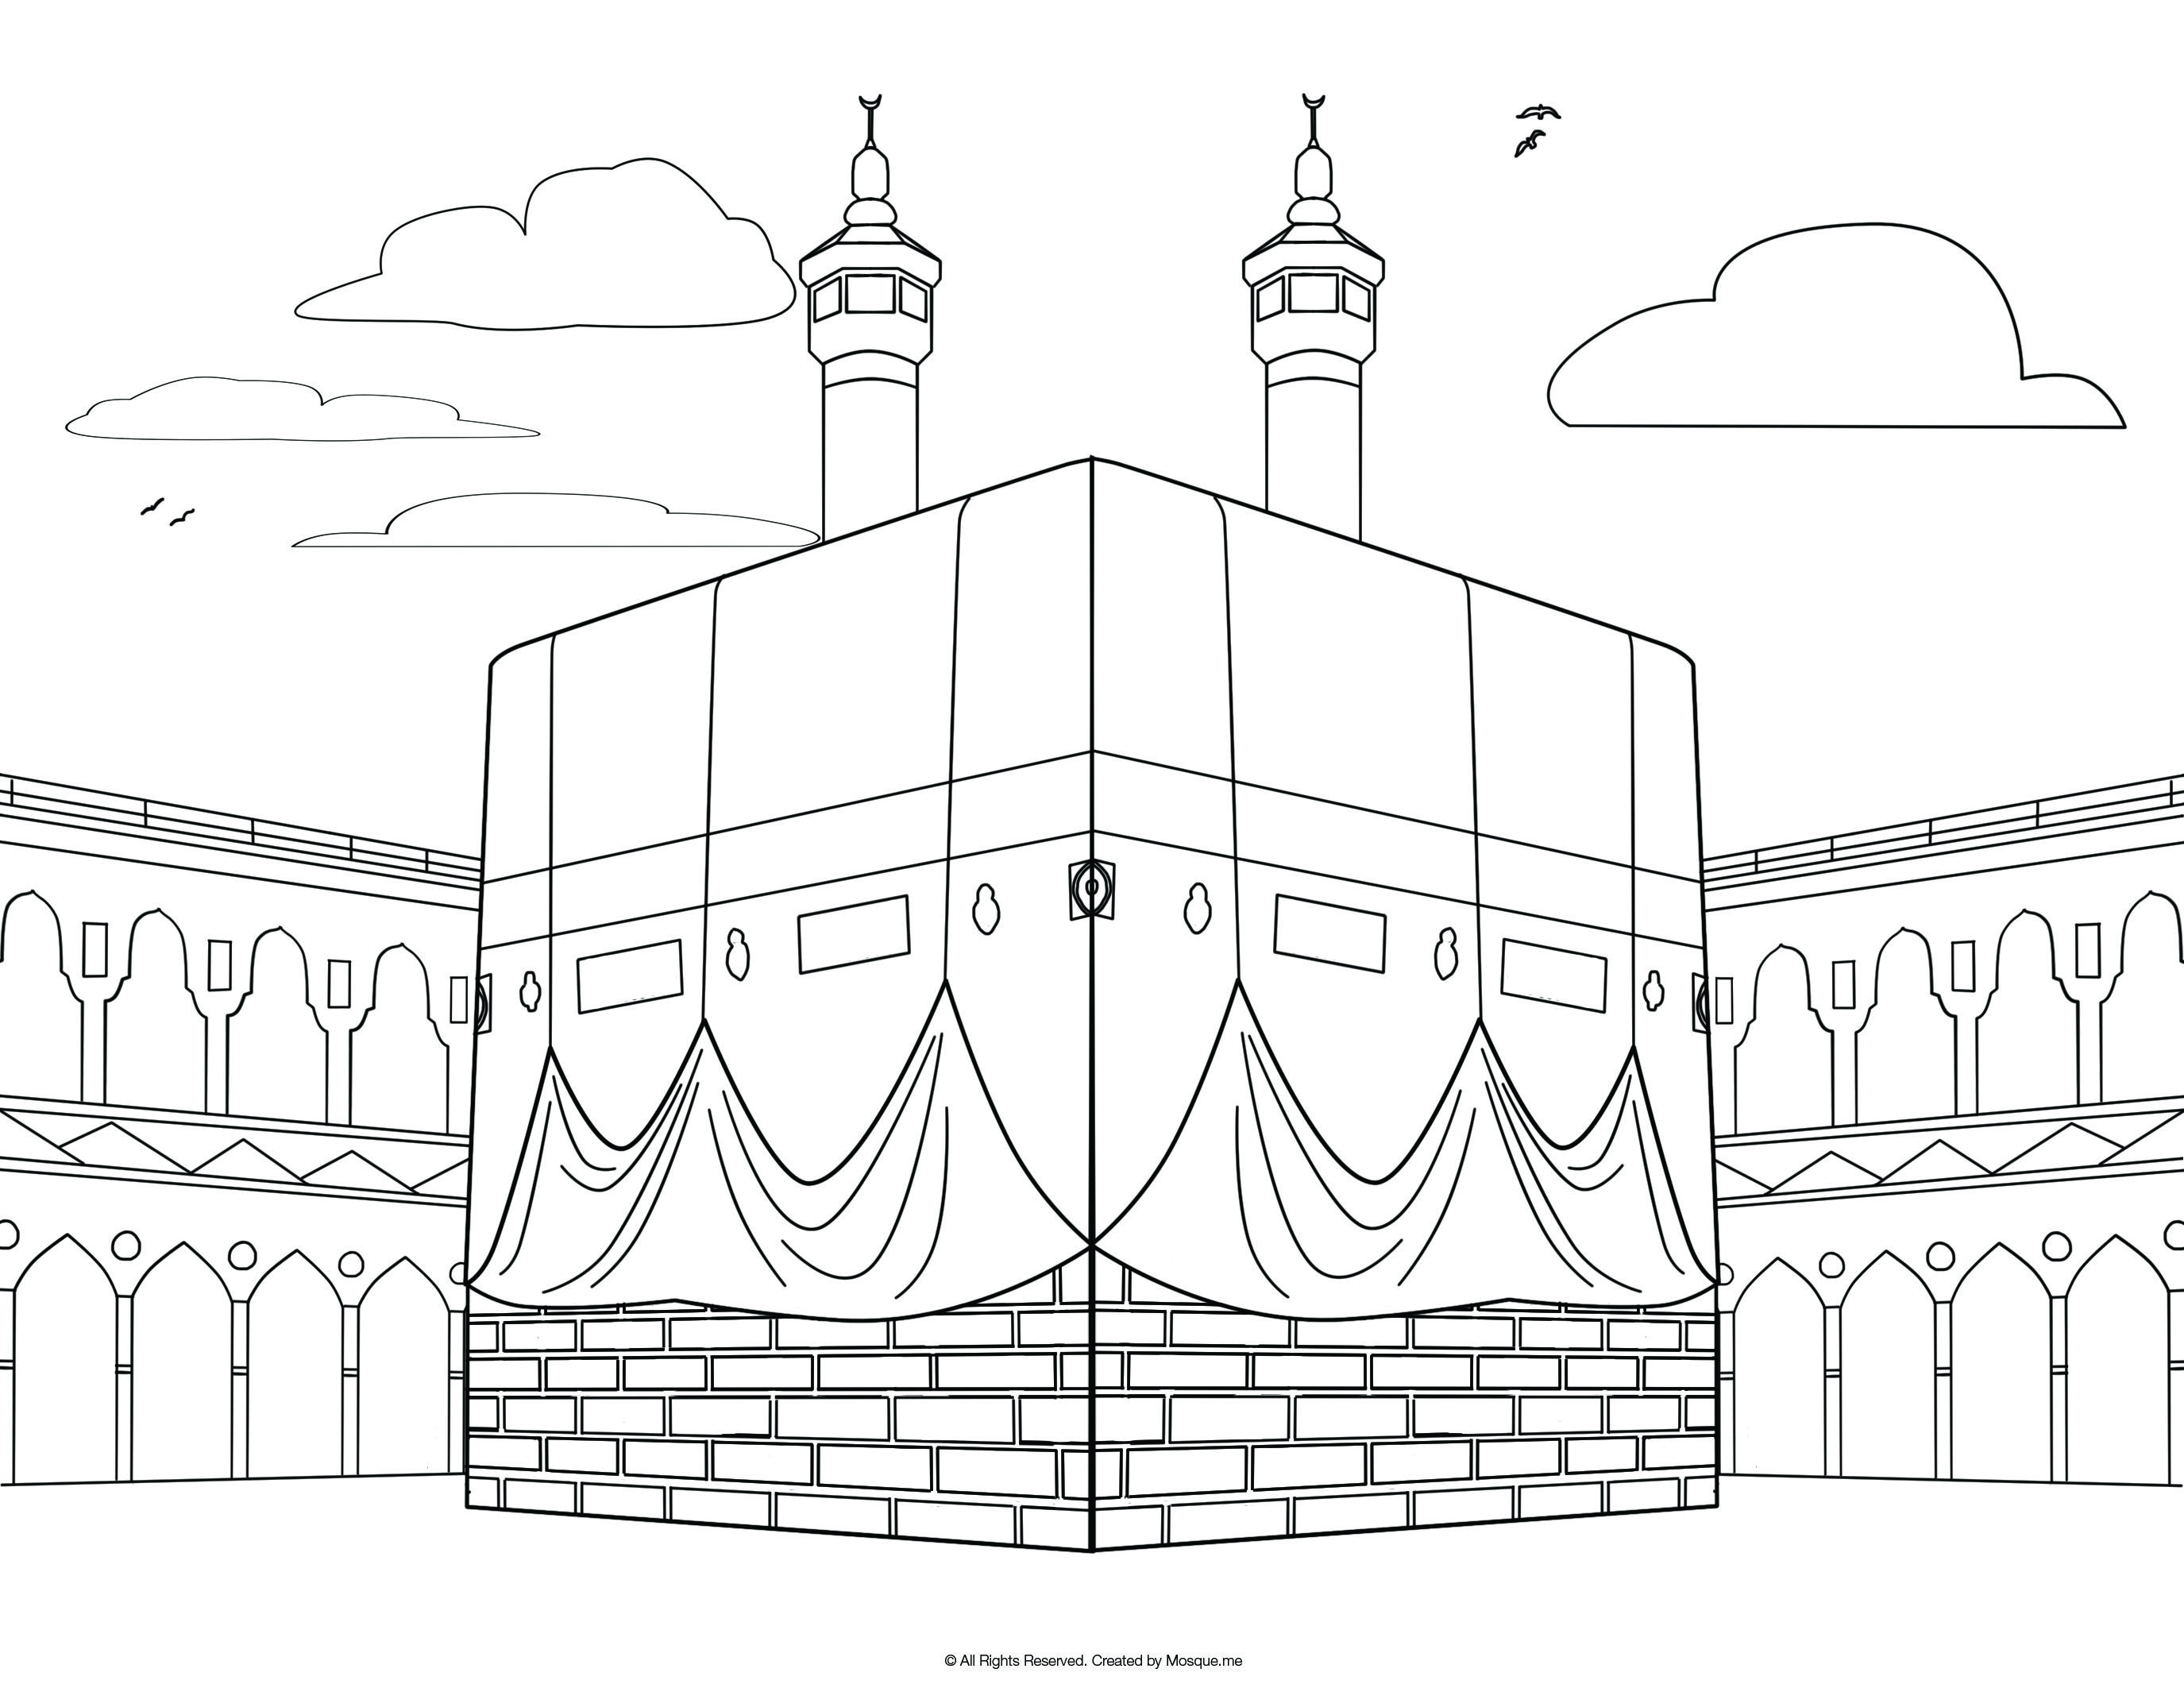 Eid colouring in sheets - Religious Mosque Kabah Coloring Pages